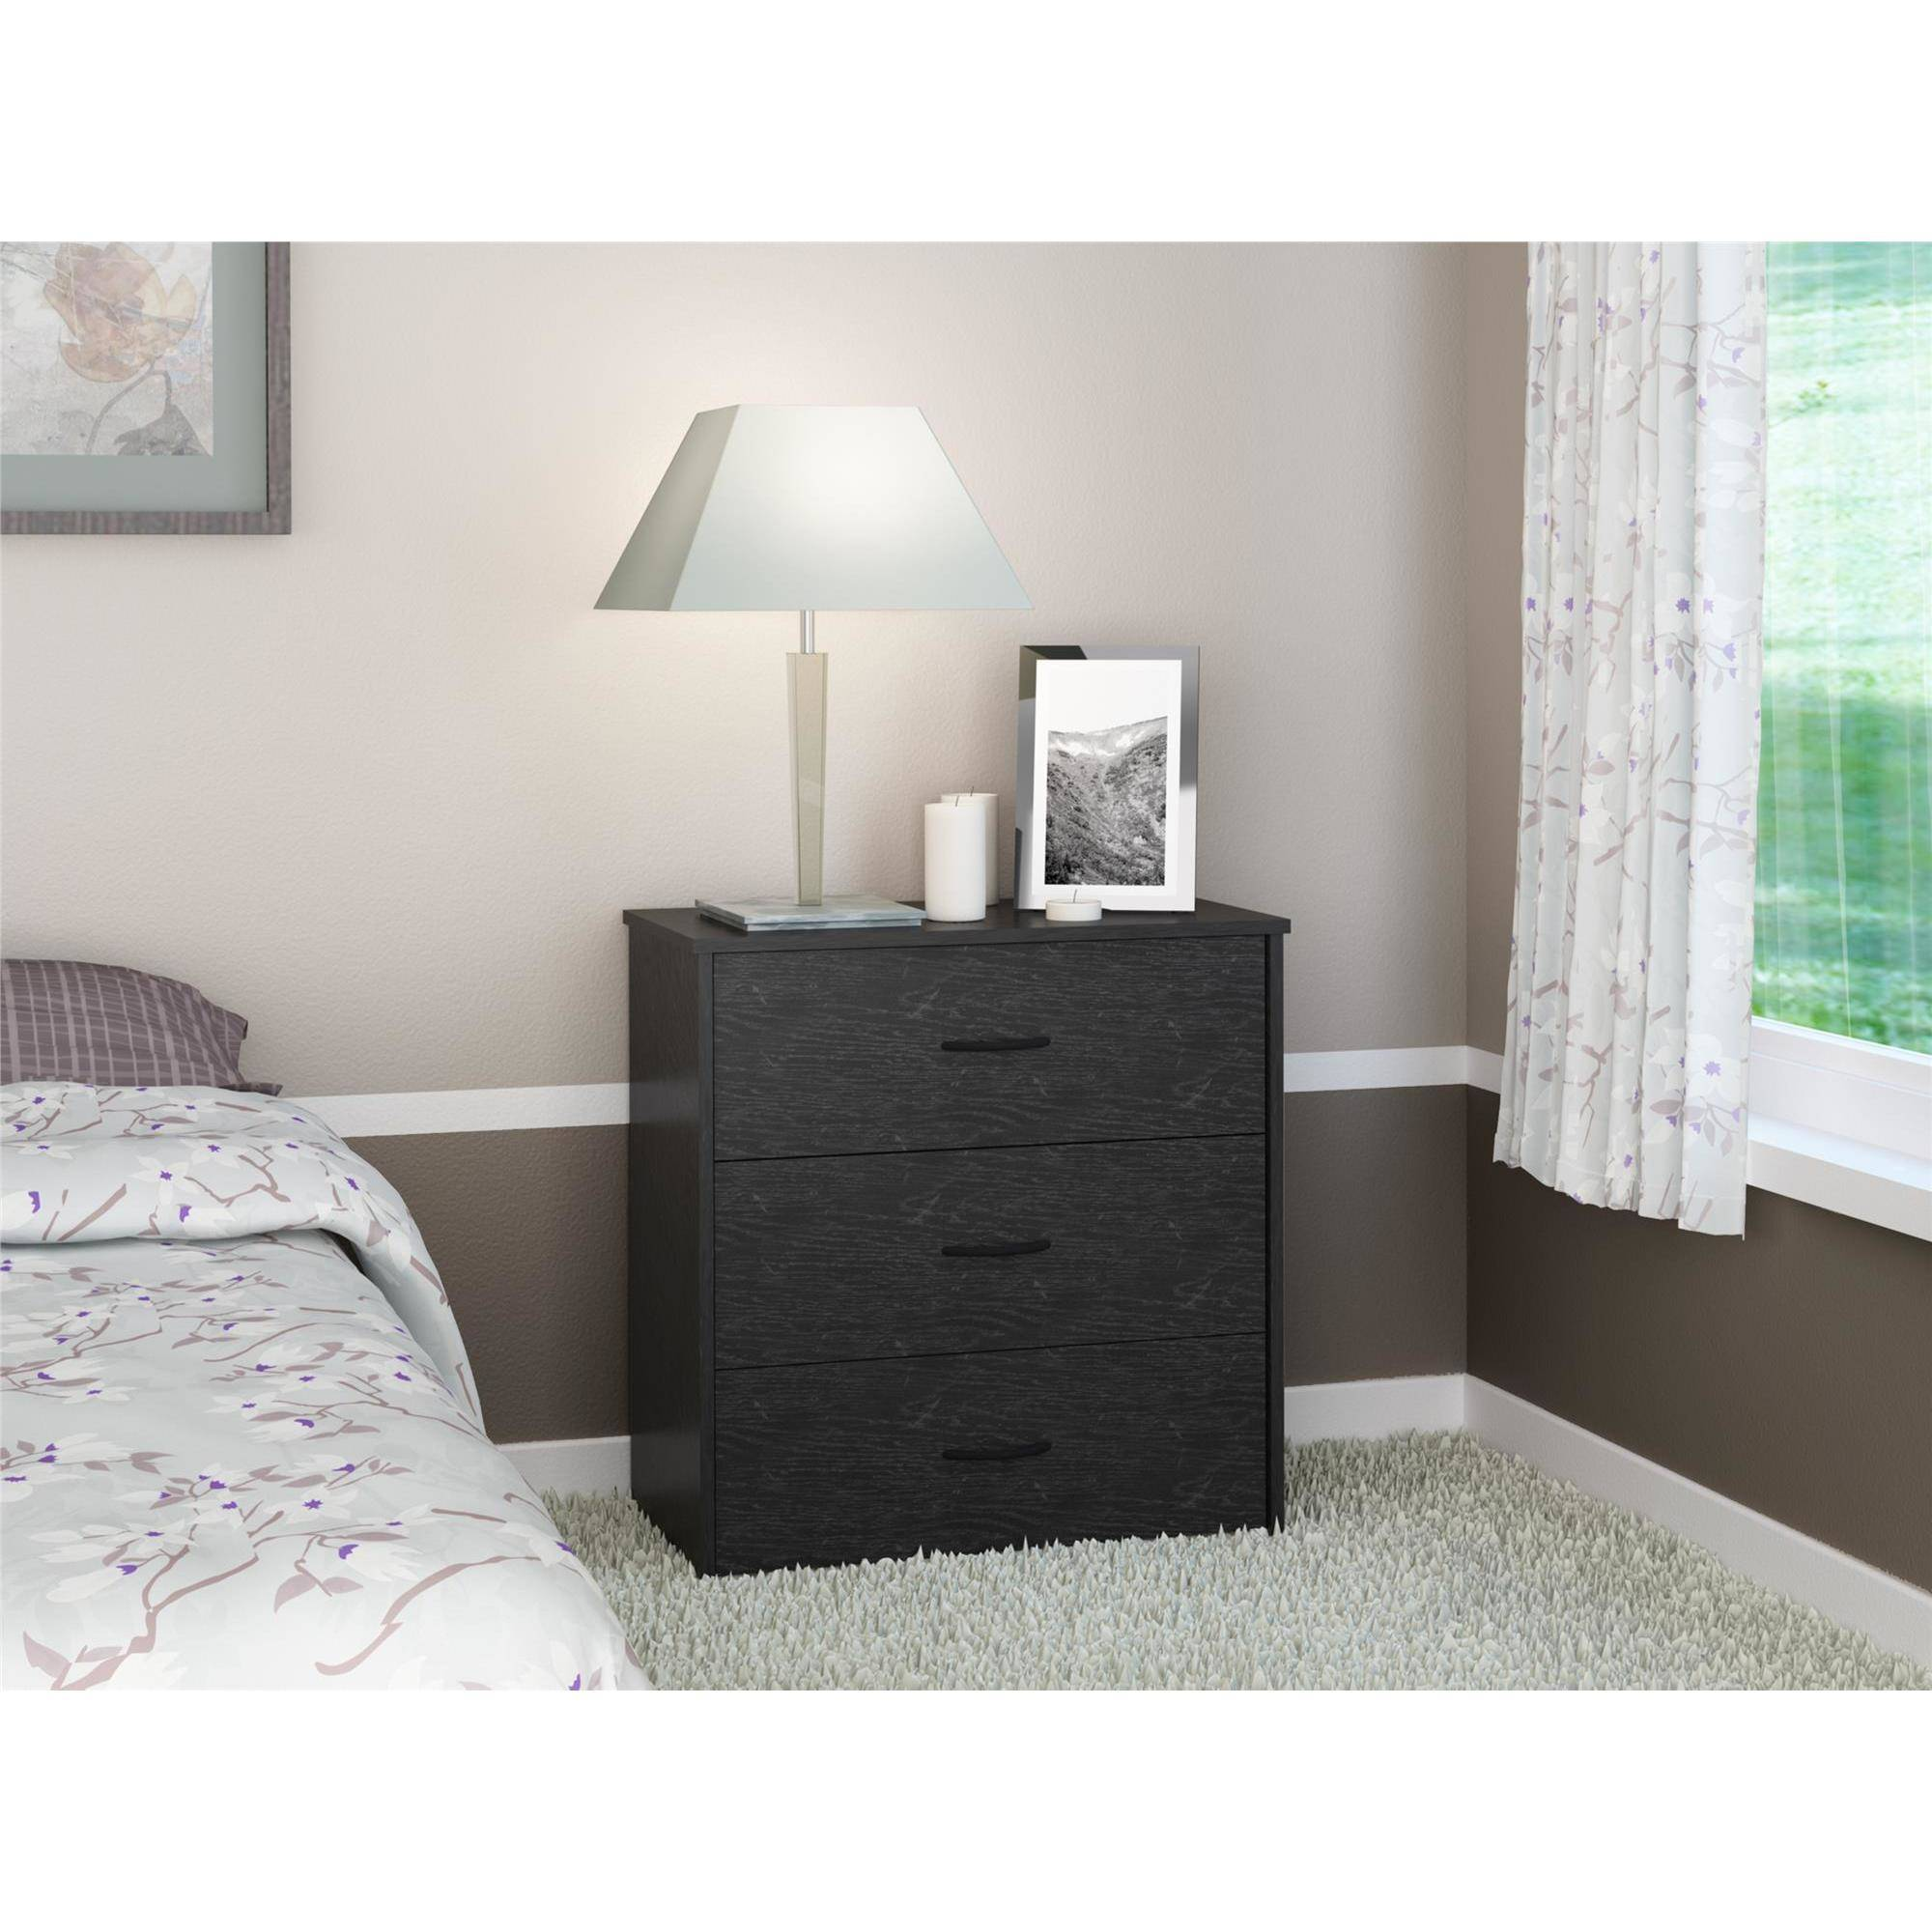 Box Bedroom Furniture Ideas: Bedroom: Mesmerizing Drawer Chest For Bedroom Furniture